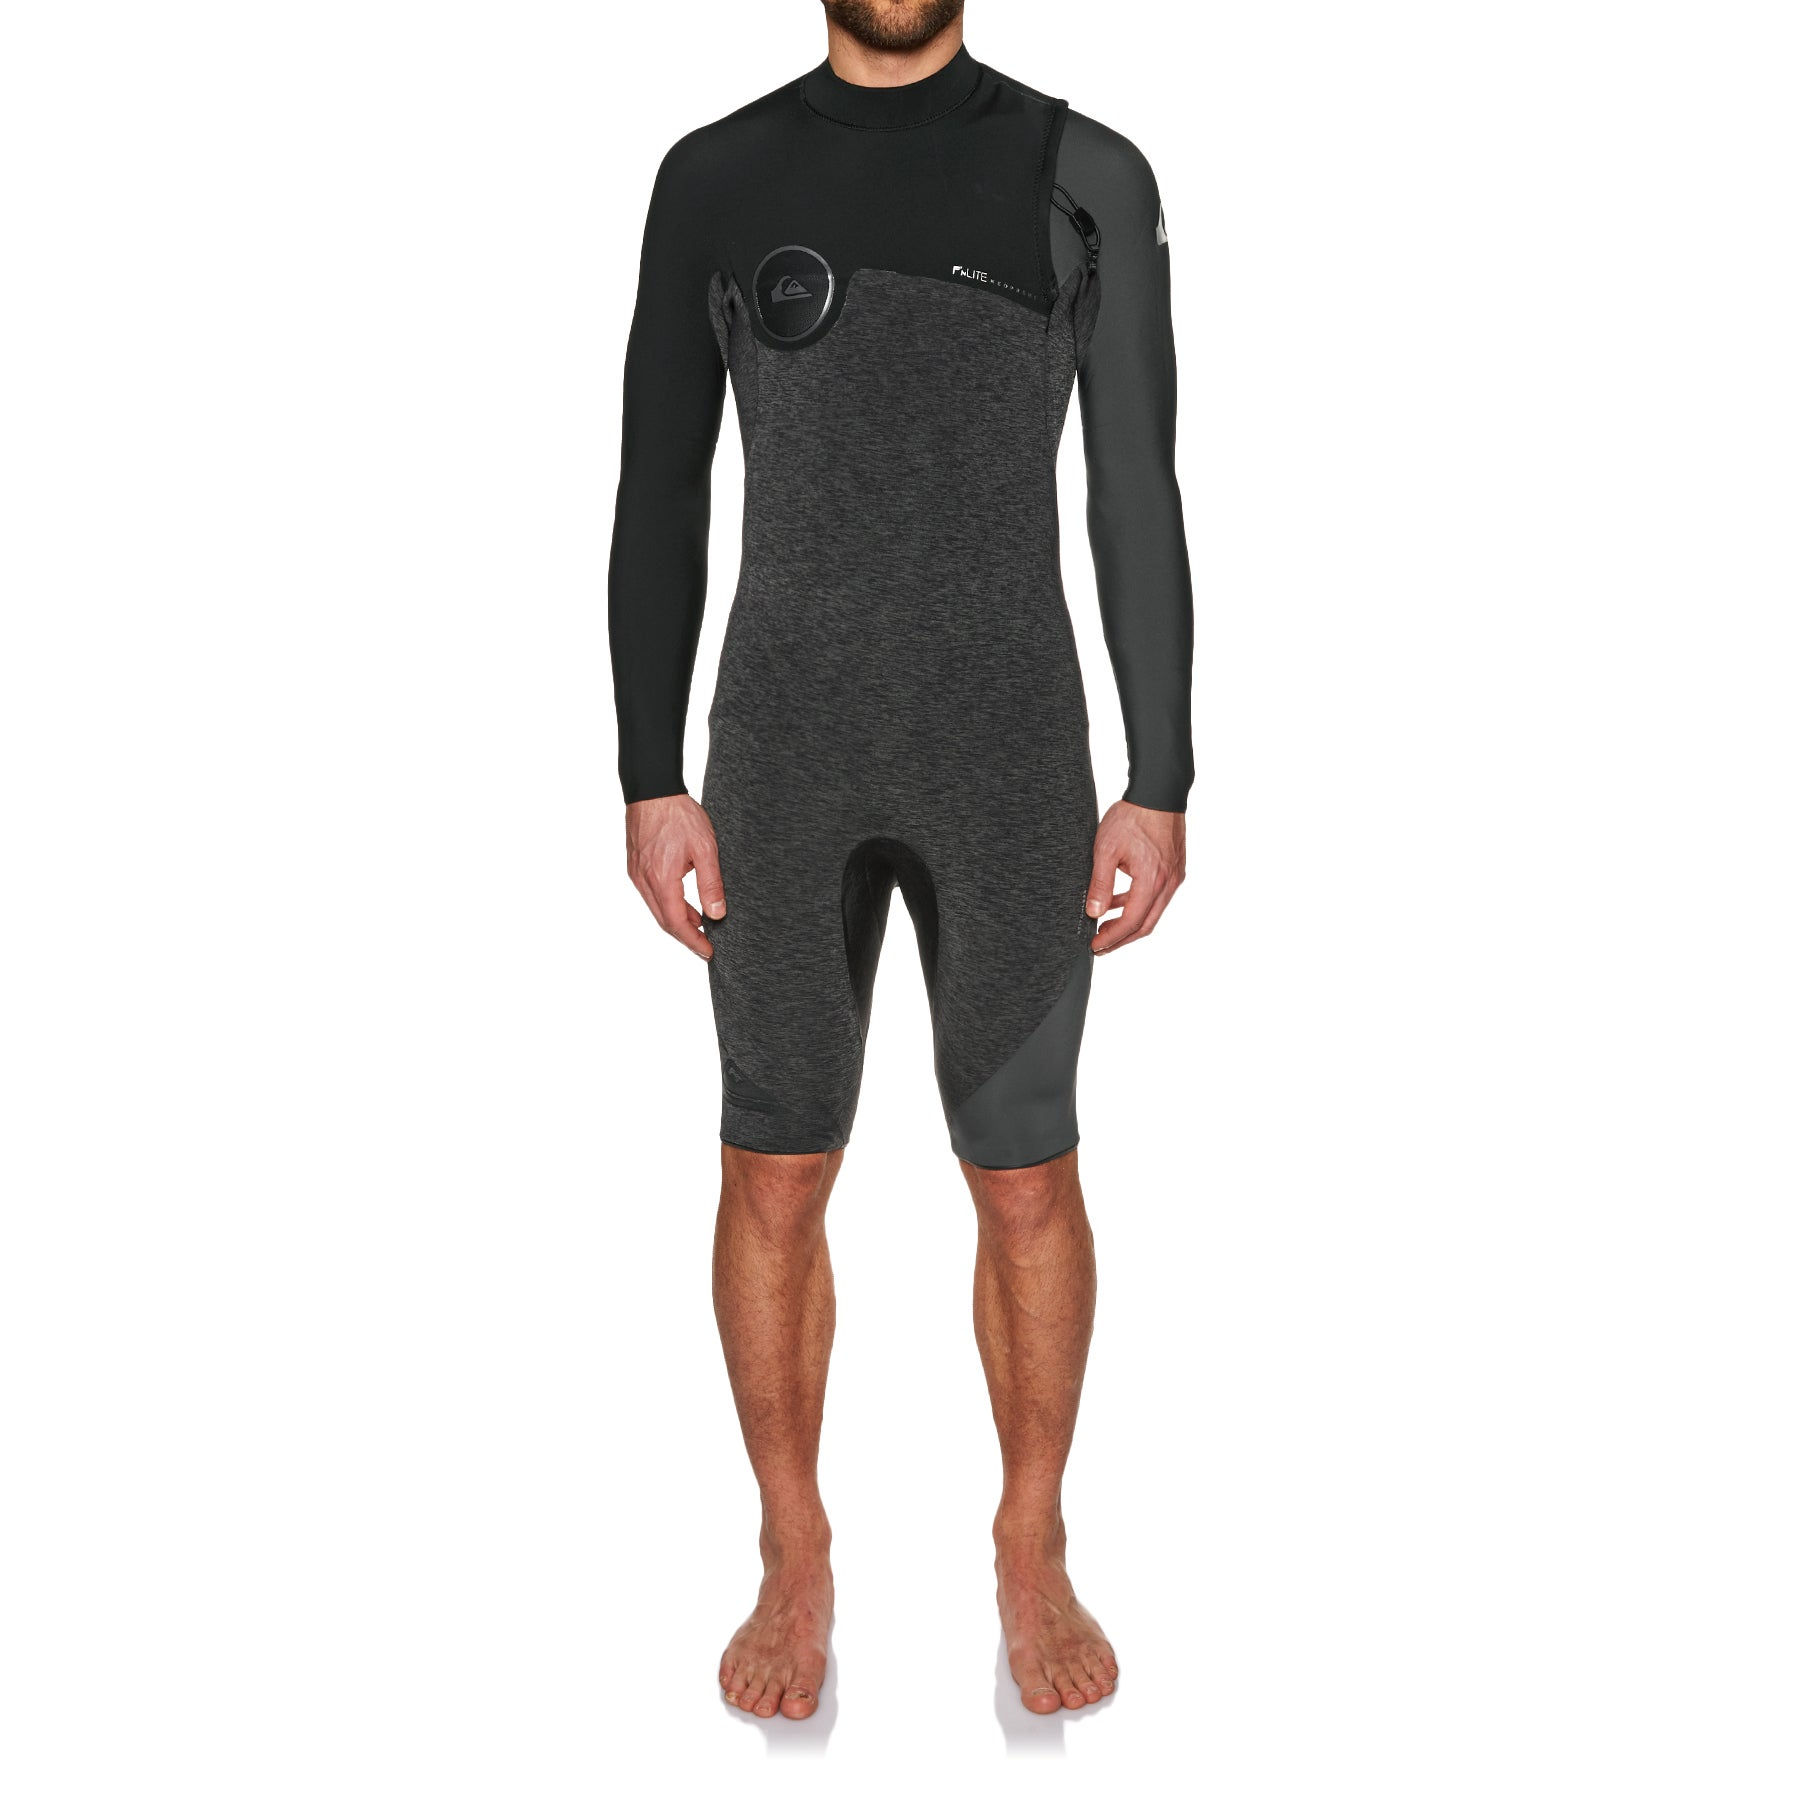 Quiksilver 2mm 2018 Hl Zipperless Long Sleeve Shorty Wetsuit - Heather Black/ Black